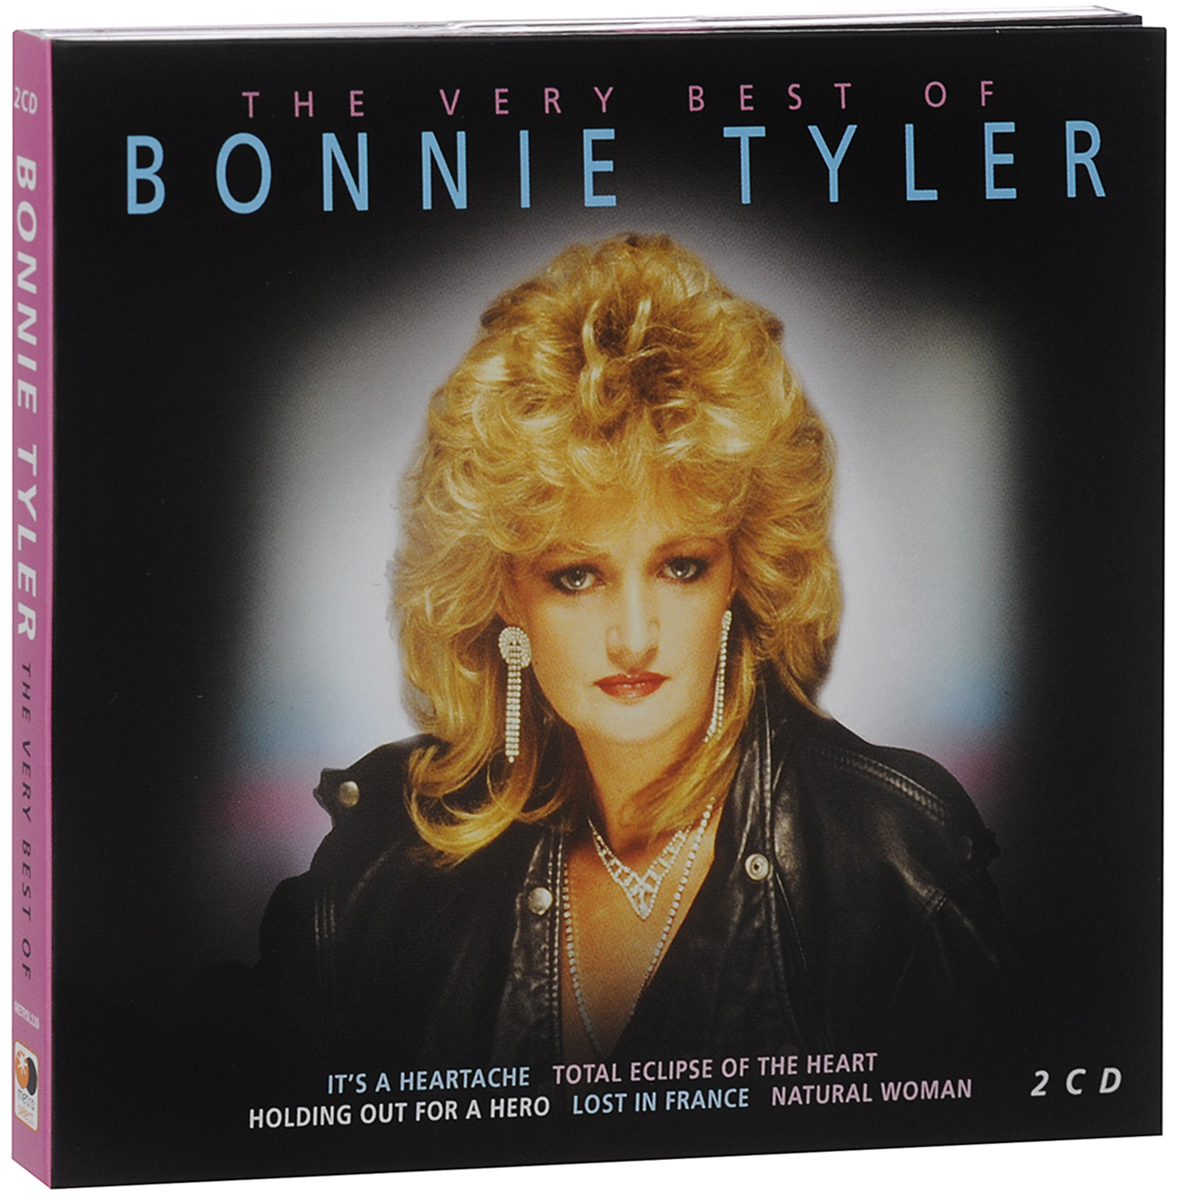 Бонни Тайлер Bonnie Tyler. The Very Best Of (2 CD) cd диск jeff healey the very best of 1 cd